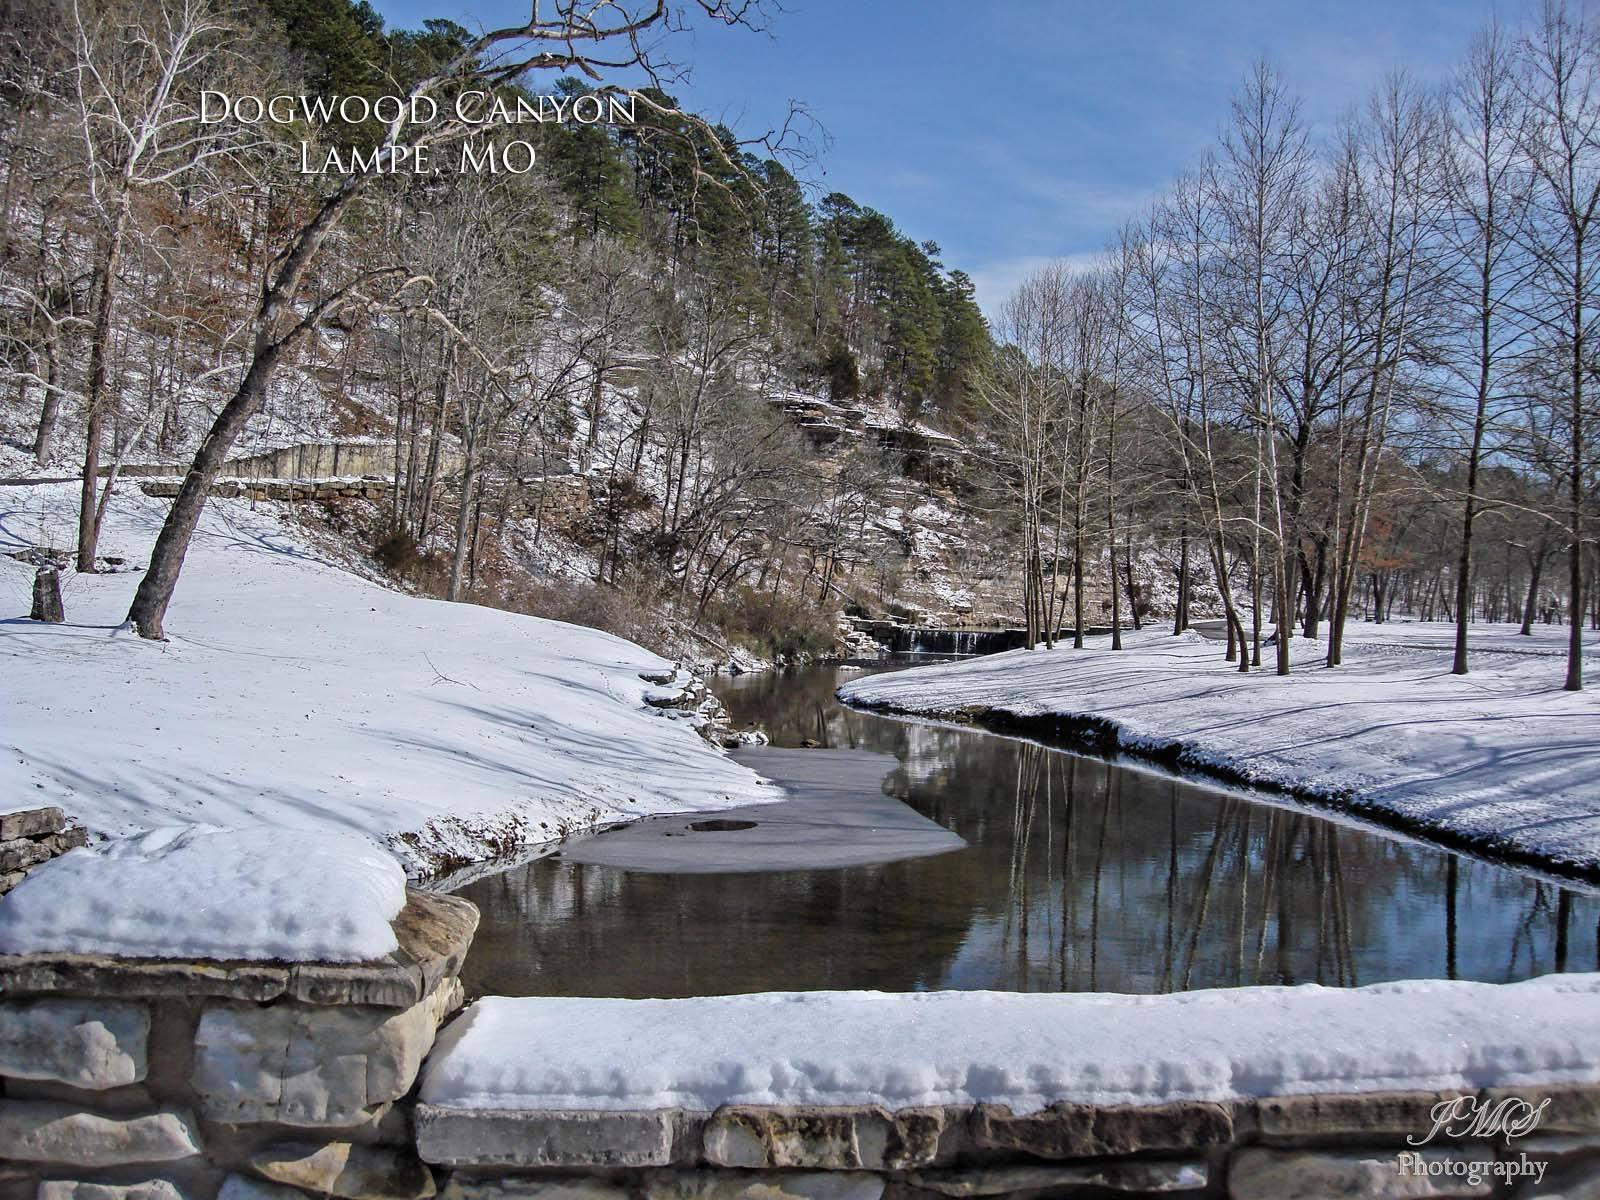 Snowy Dogwood Canyon